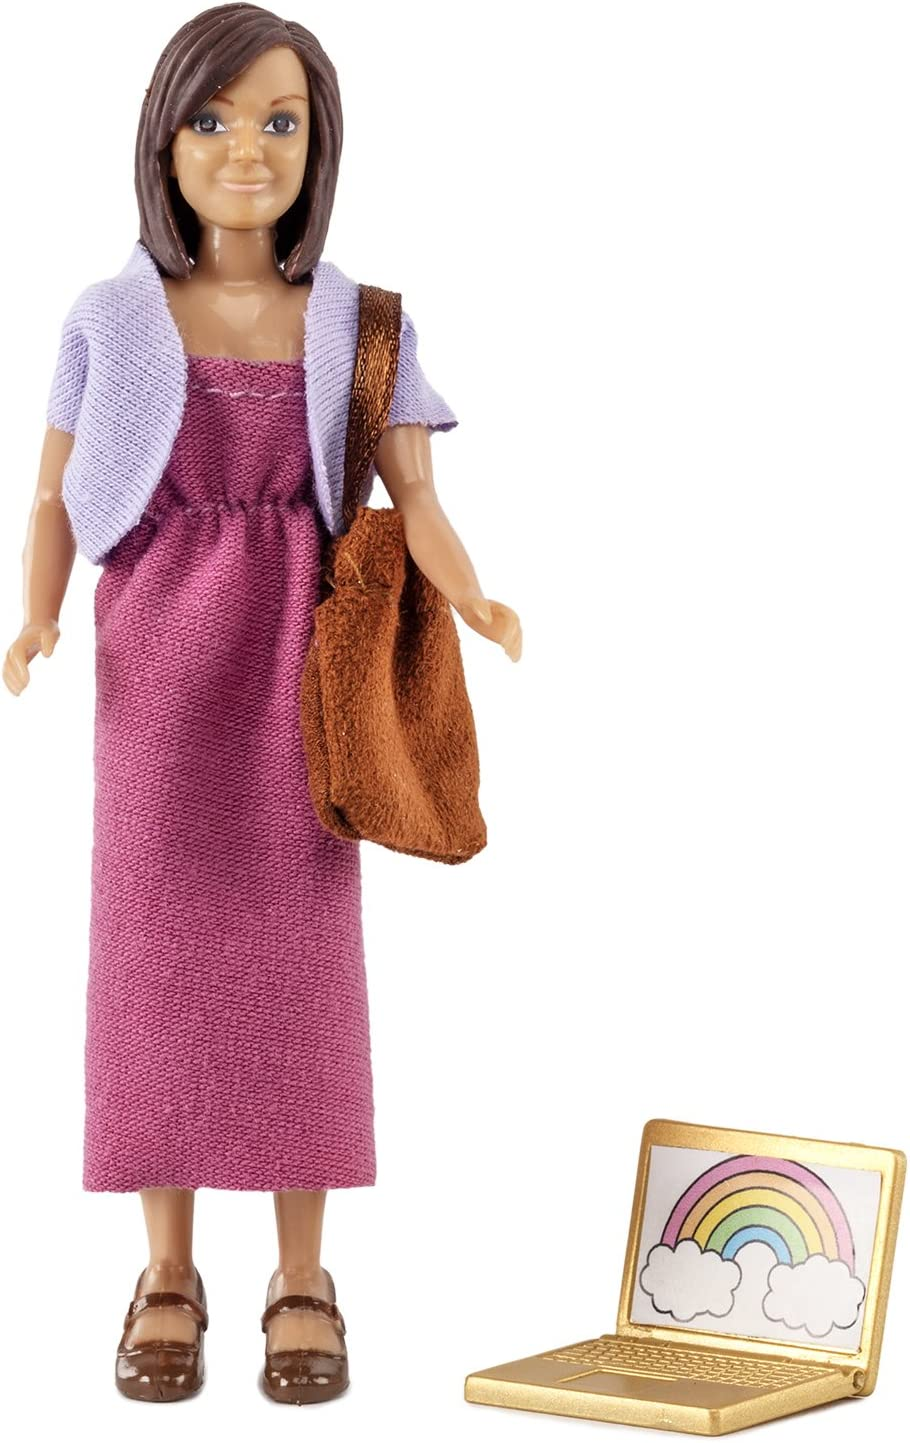 Melody Jane Dollhouse Lundby Modern Mum Mother with Laptop & Bag